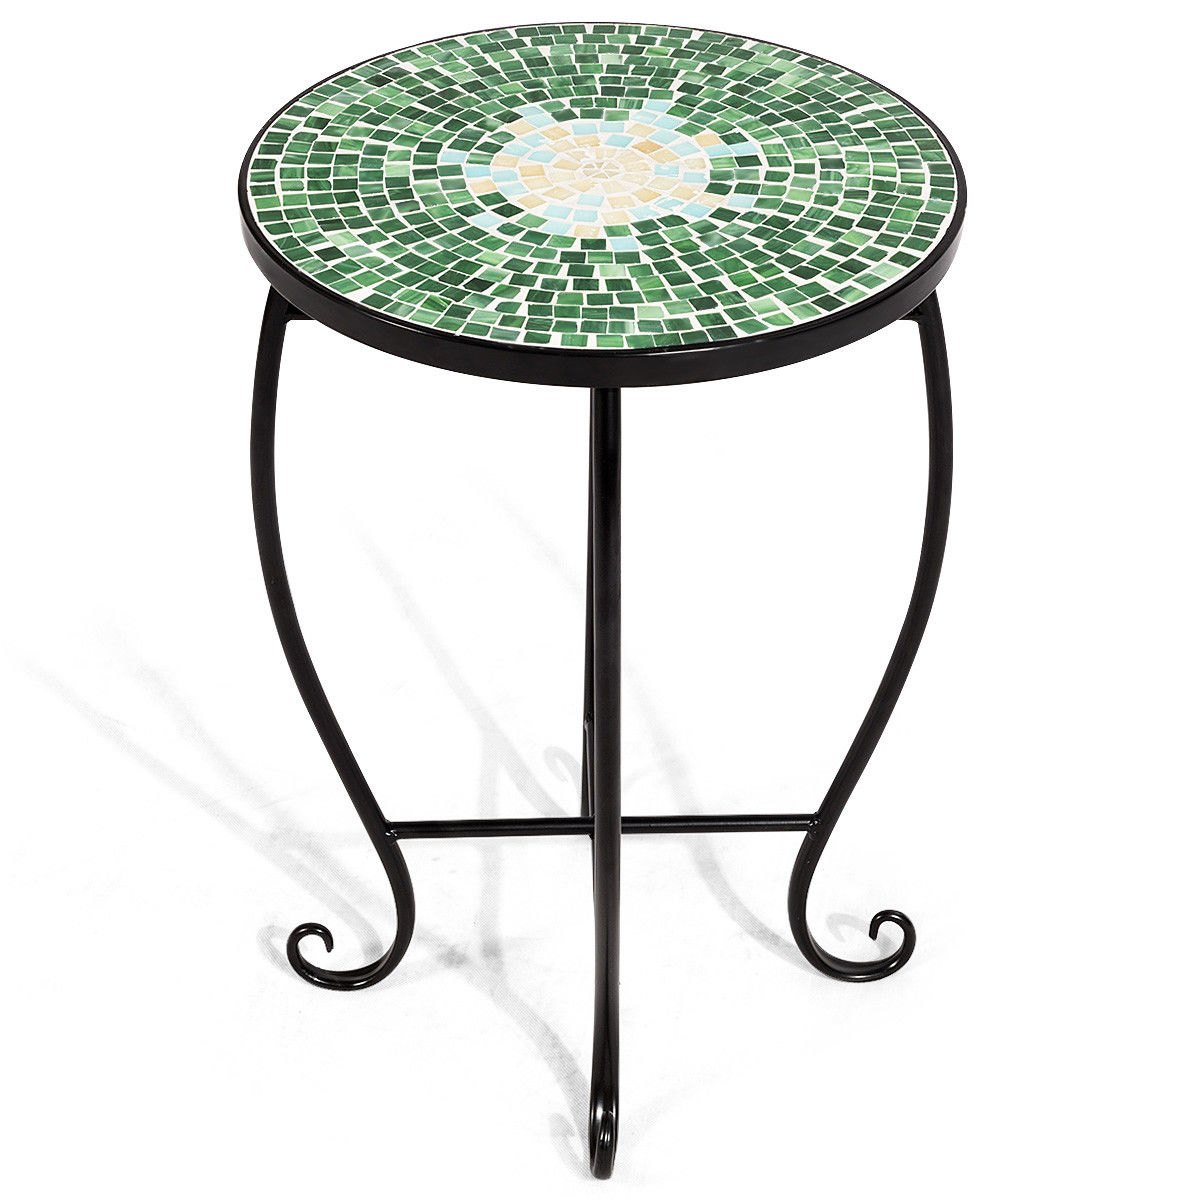 way outdoor indoor accent table plant stand scheme metal garden steel green nautical porch lights build side white round tray industrial bedside cool nest tables patio sofa cover